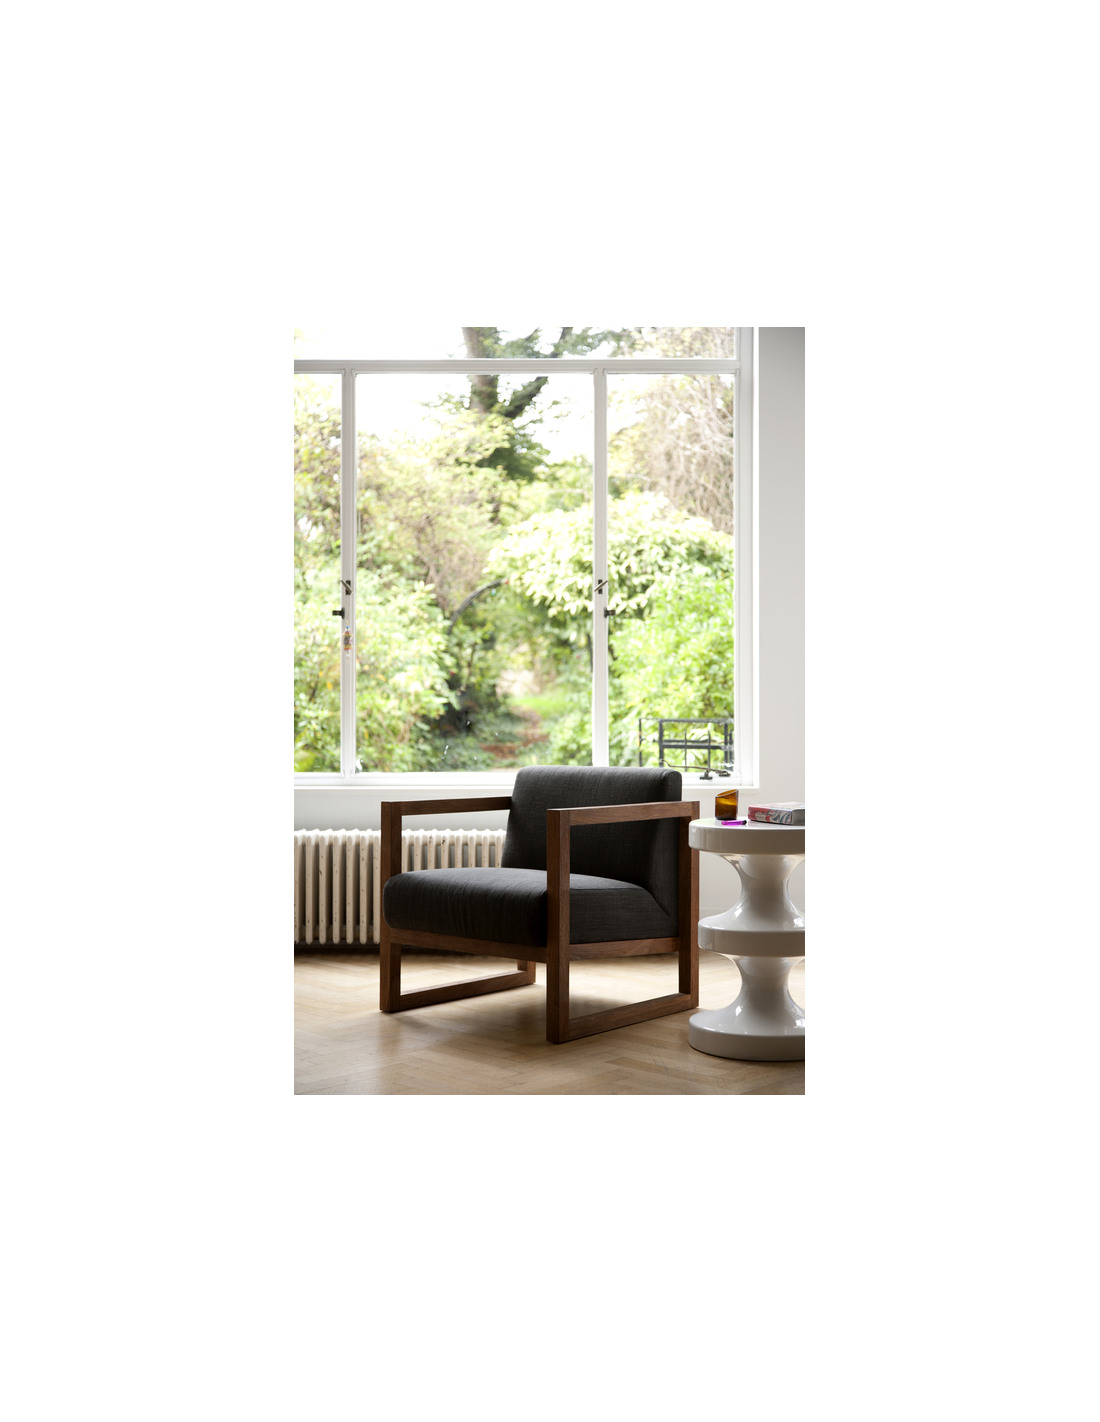 Teck fauteuil Square Root - Turkish Coffee 69 x 75 x 75